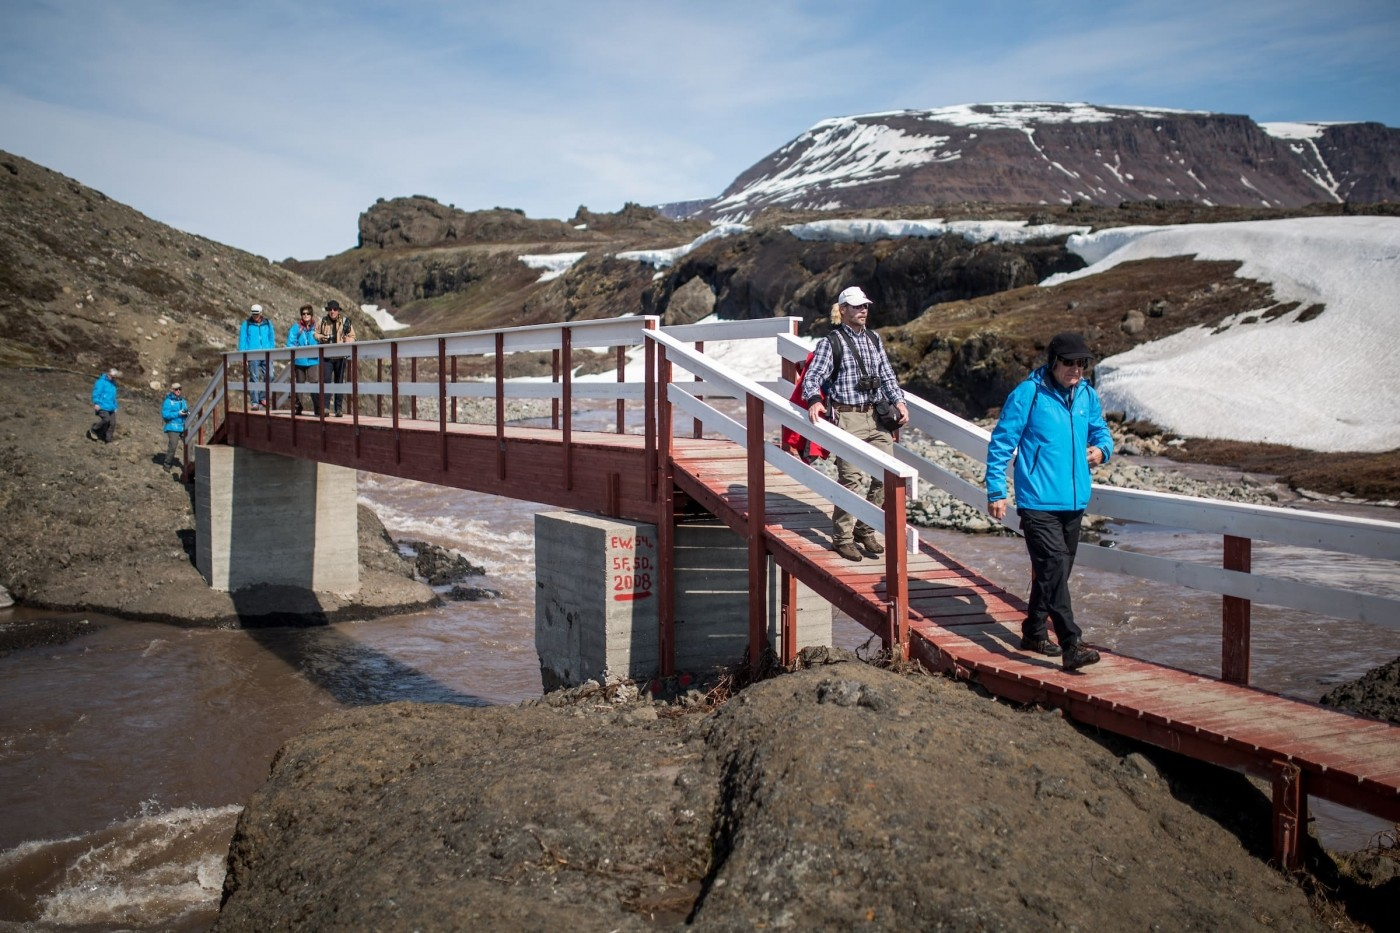 Hikers on the trail to the basaltic rocks in Qeqertarsuaq in Greenland. By Mads Pihl